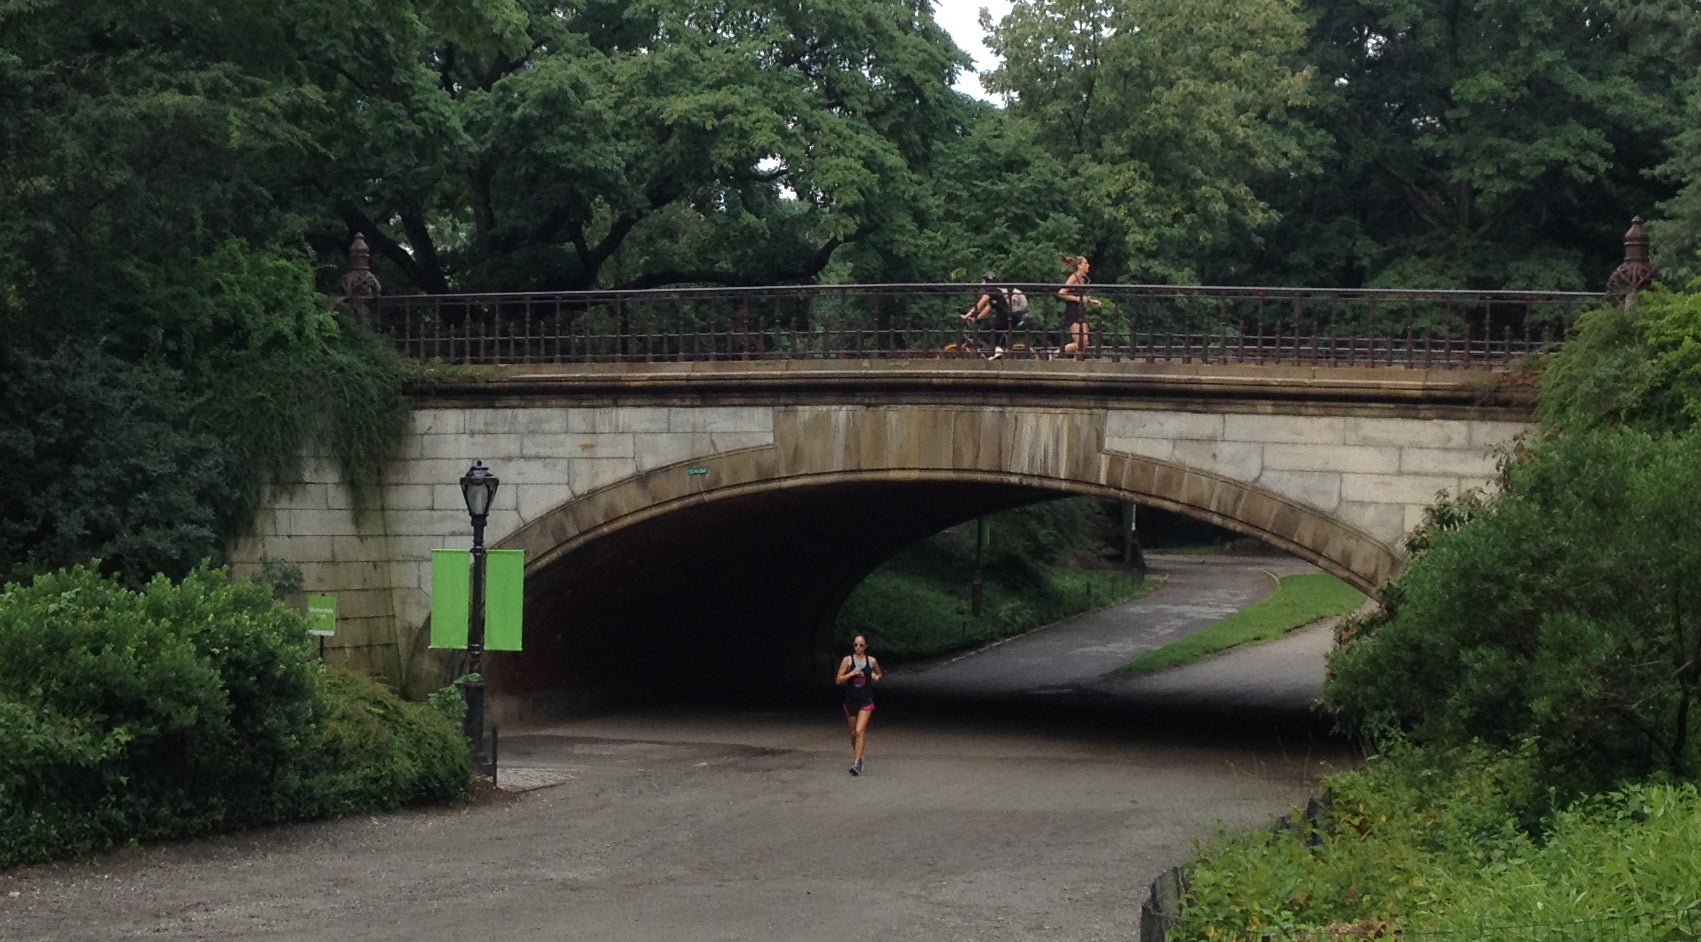 Running on Bridle Path, Central Park, New York